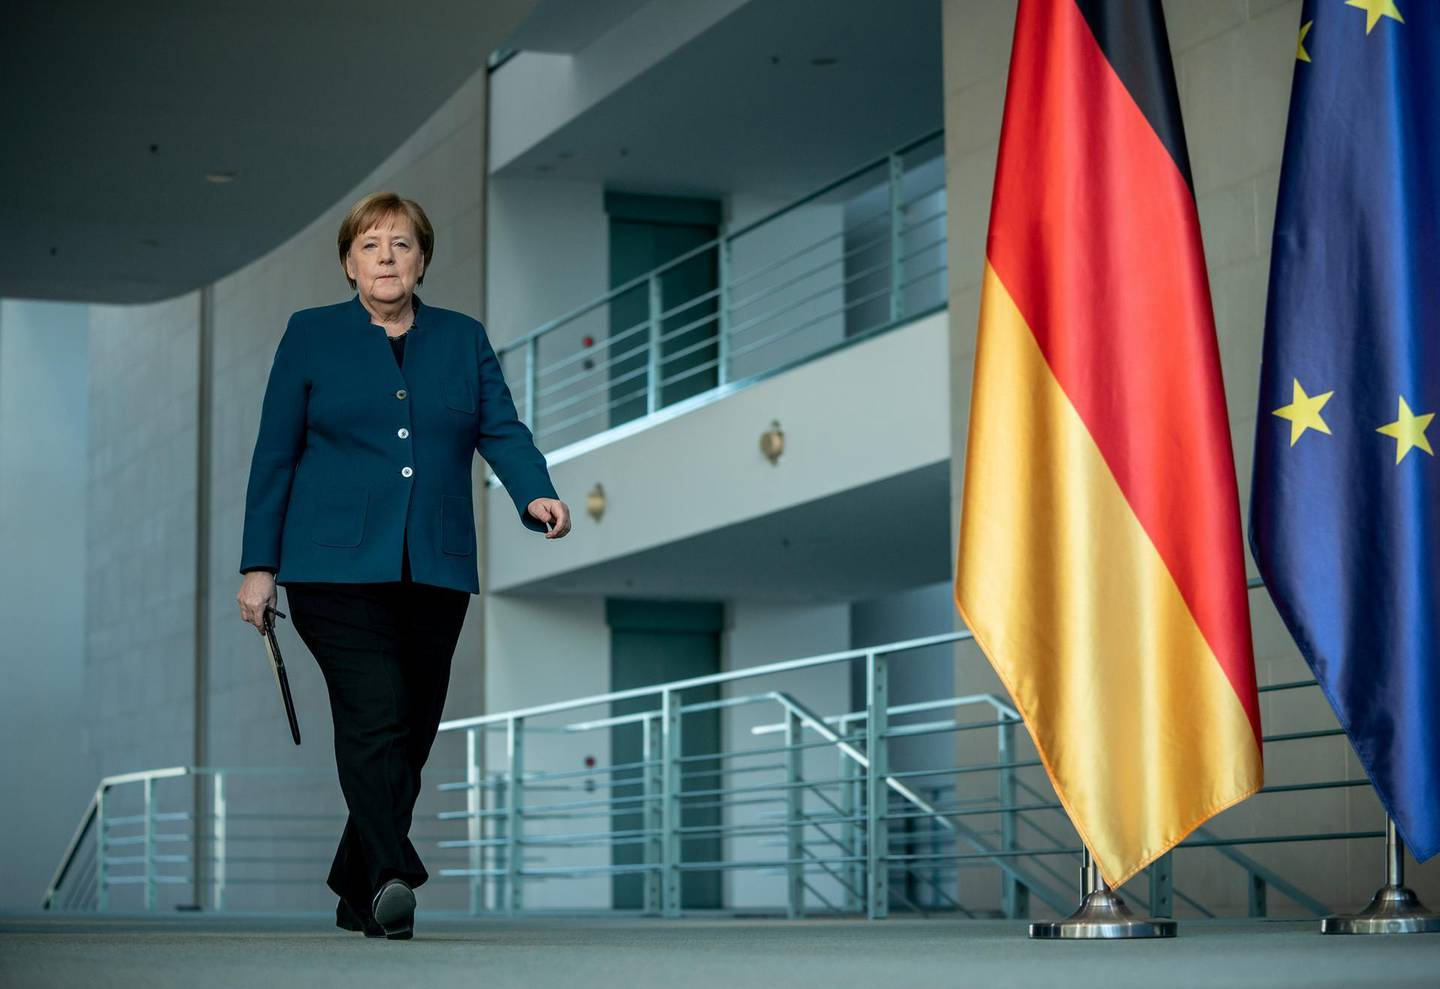 FILE PHOTO: German Chancellor Angela Merkel arrives for a media statement on the spread of the new coronavirus disease (COVID-19) at the Chancellery in Berlin, Germany, March 22, 2020.   Michel Kappeler/Pool via REUTERS/File Photo